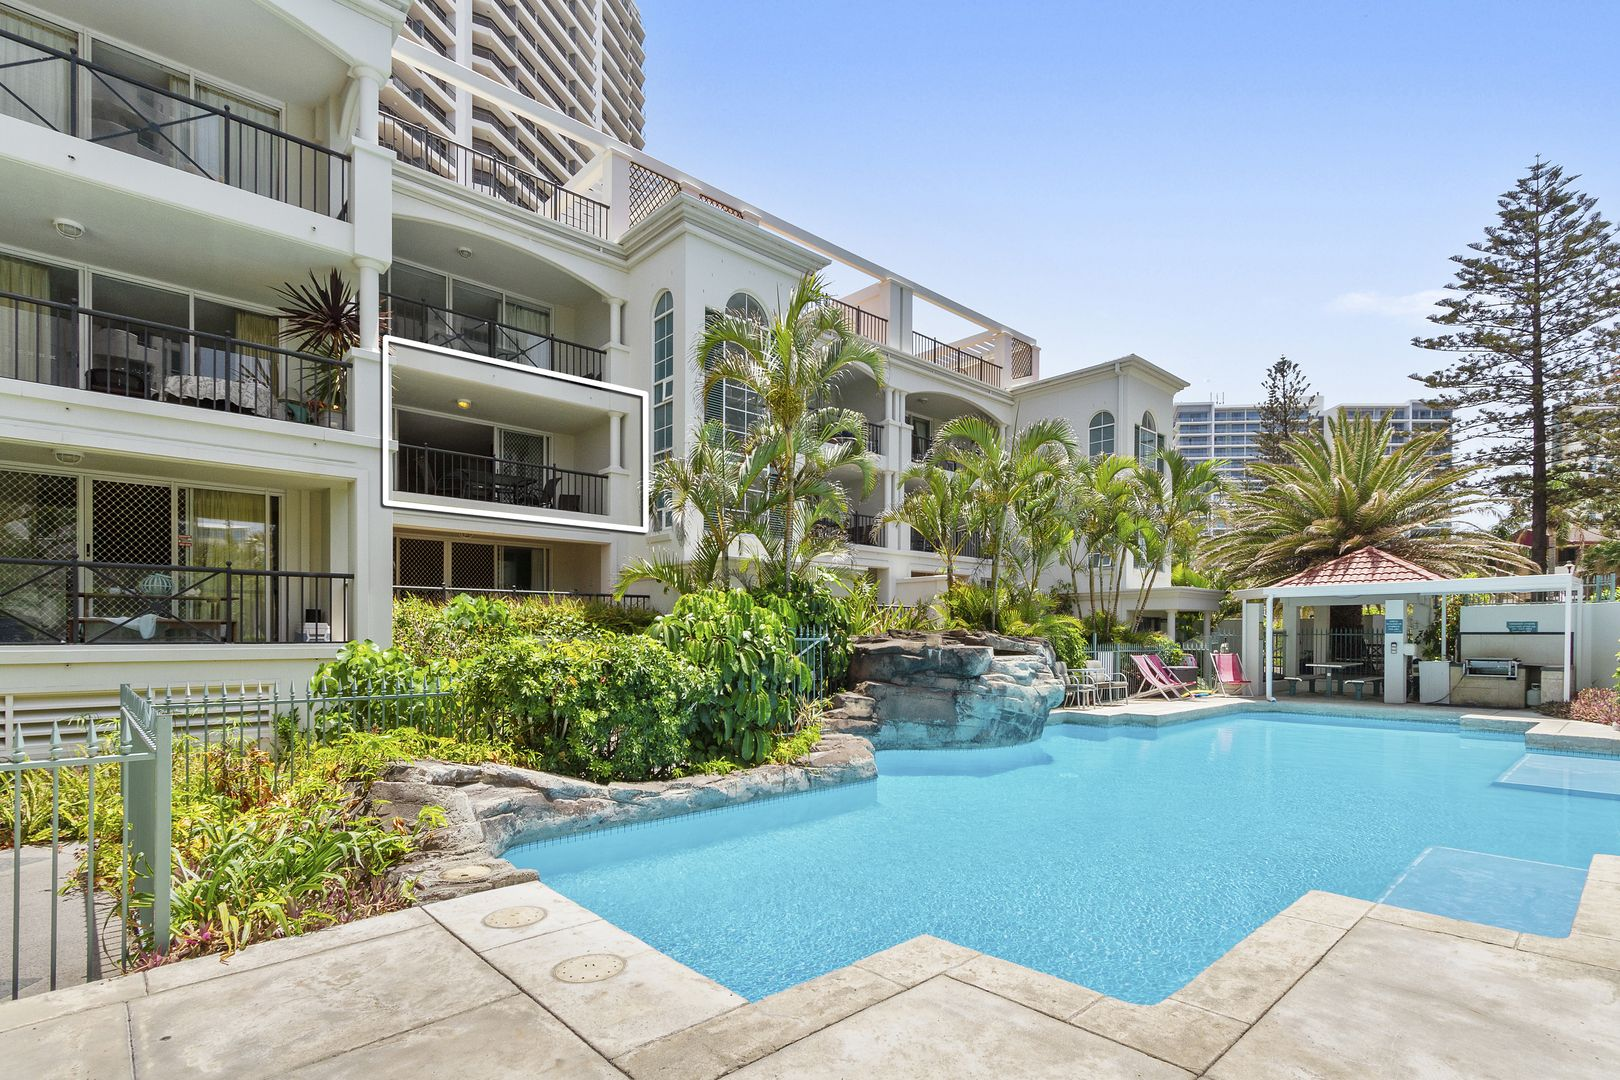 10/4-6 Northcliffe Terrace, Surfers Paradise QLD 4217, Image 1